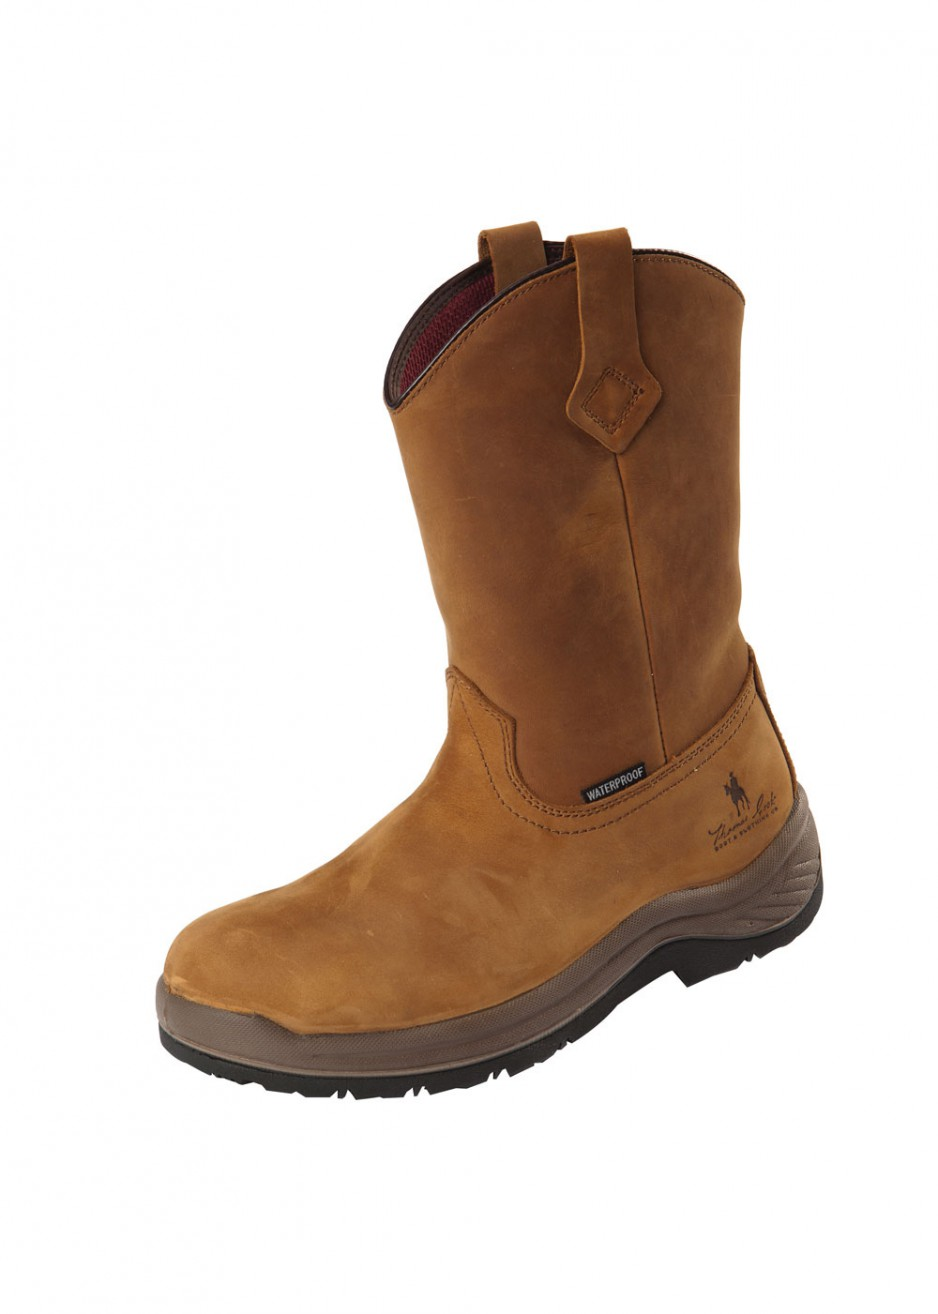 FERGUSON STEEL TOE BOOT